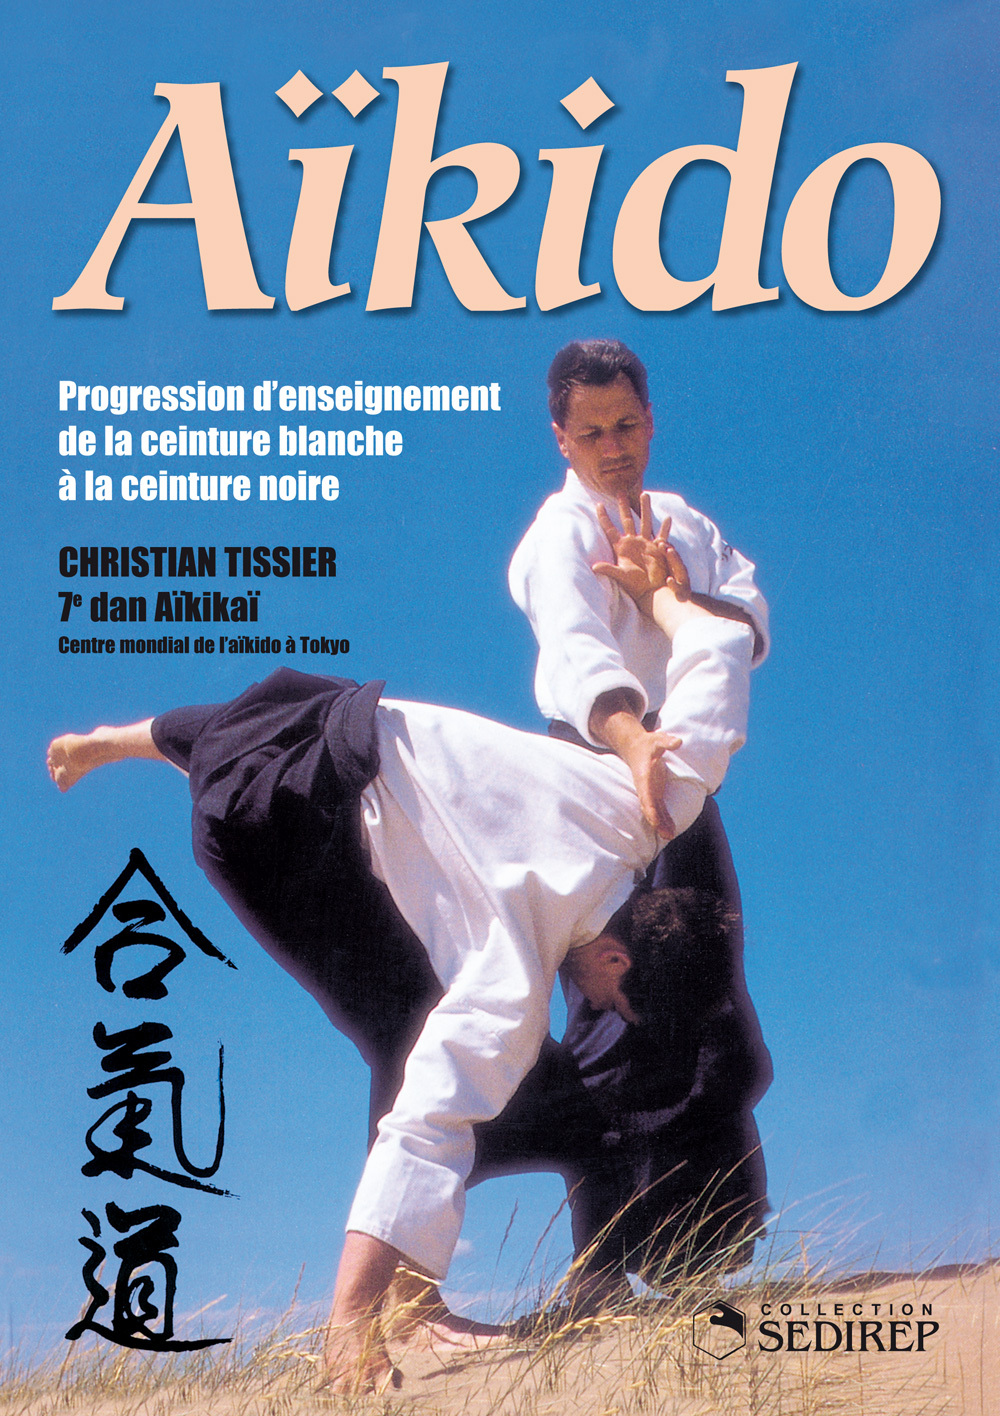 AIKIDO - PROGRESSION D'ENSEIGNEMENT